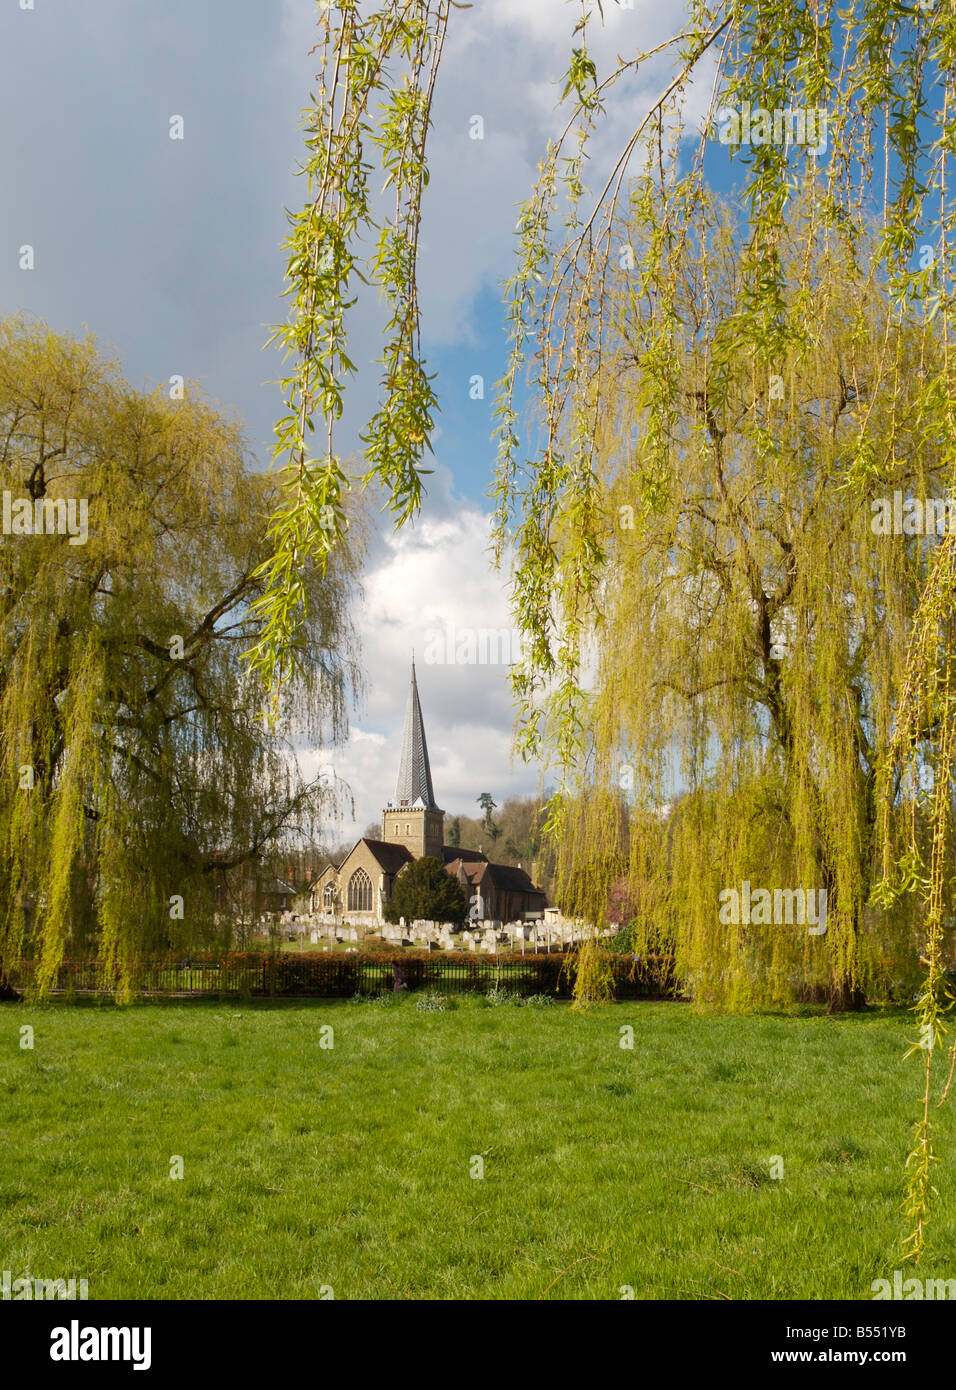 St Peter and St Paul parish church Godalming, viewed from the Lammas water meadows - Stock Image